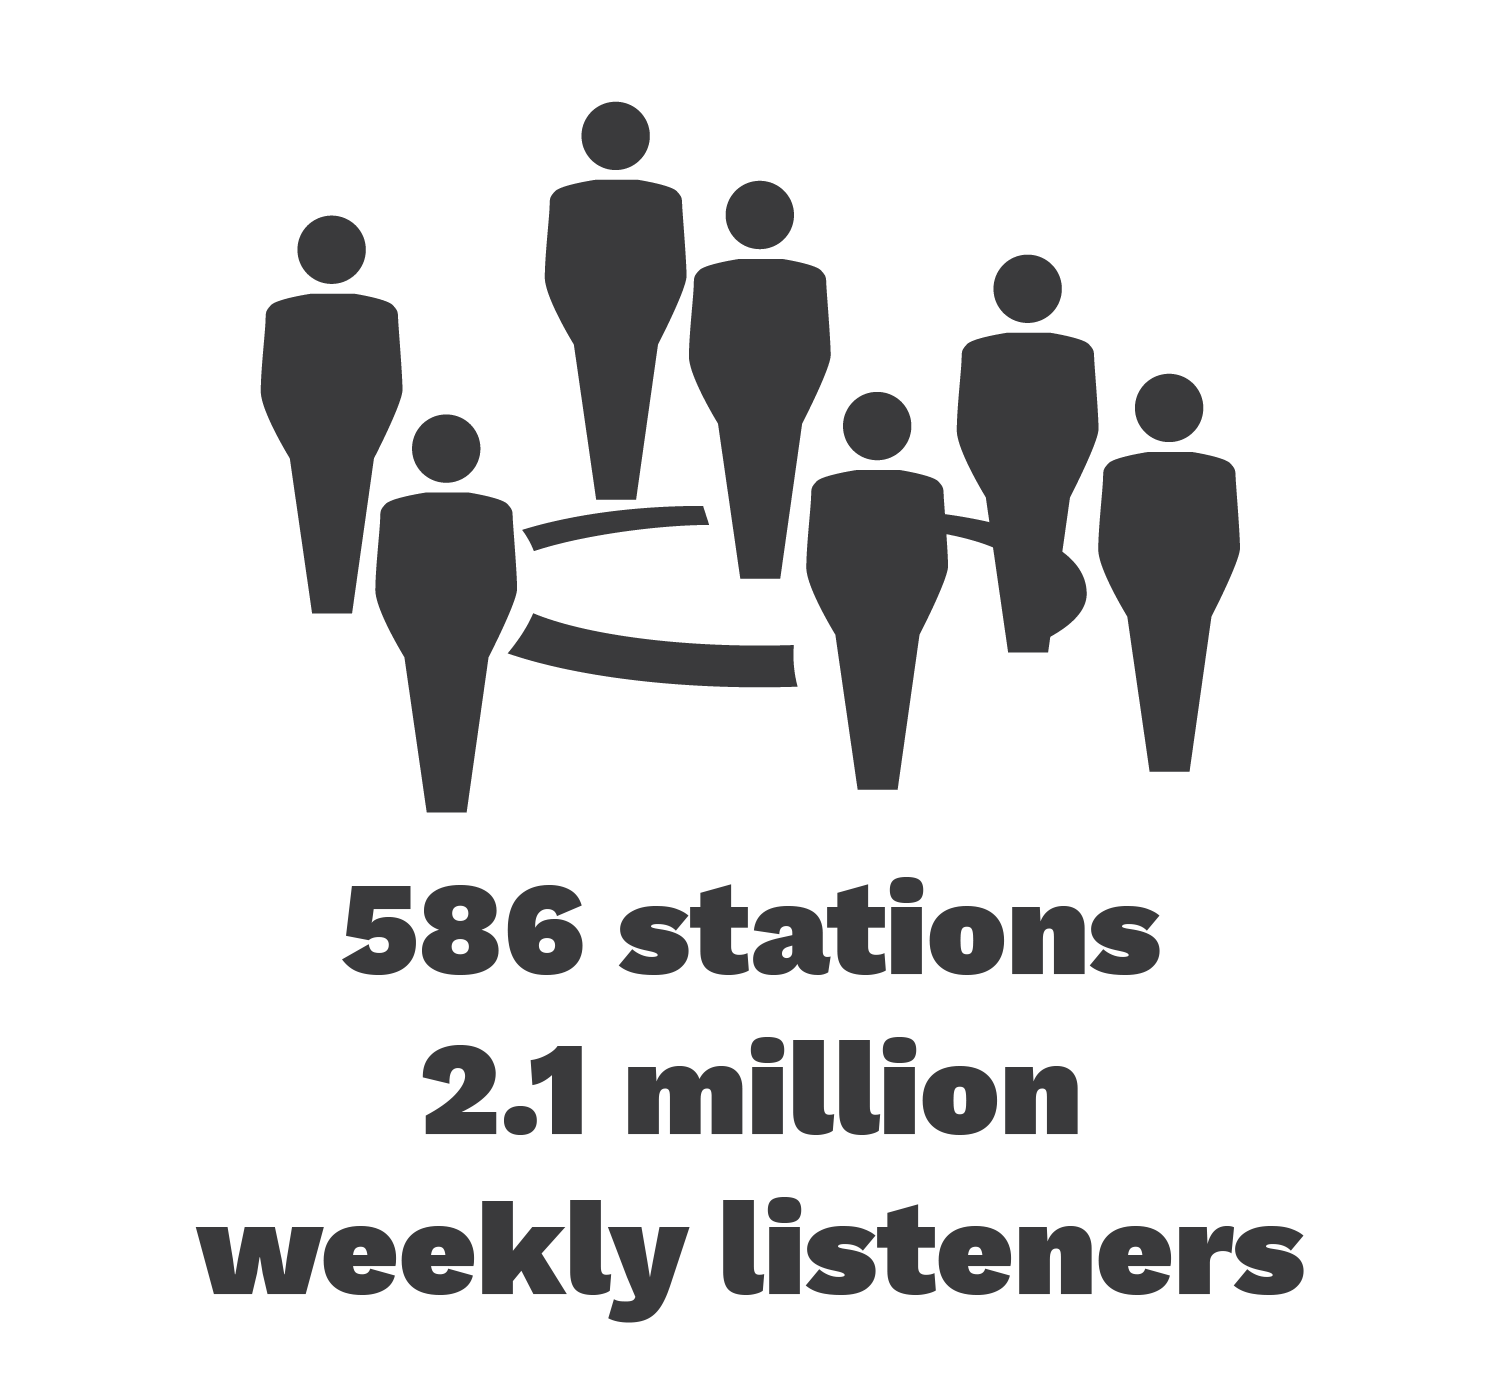 586 stations, 2.4 million weekly listeners